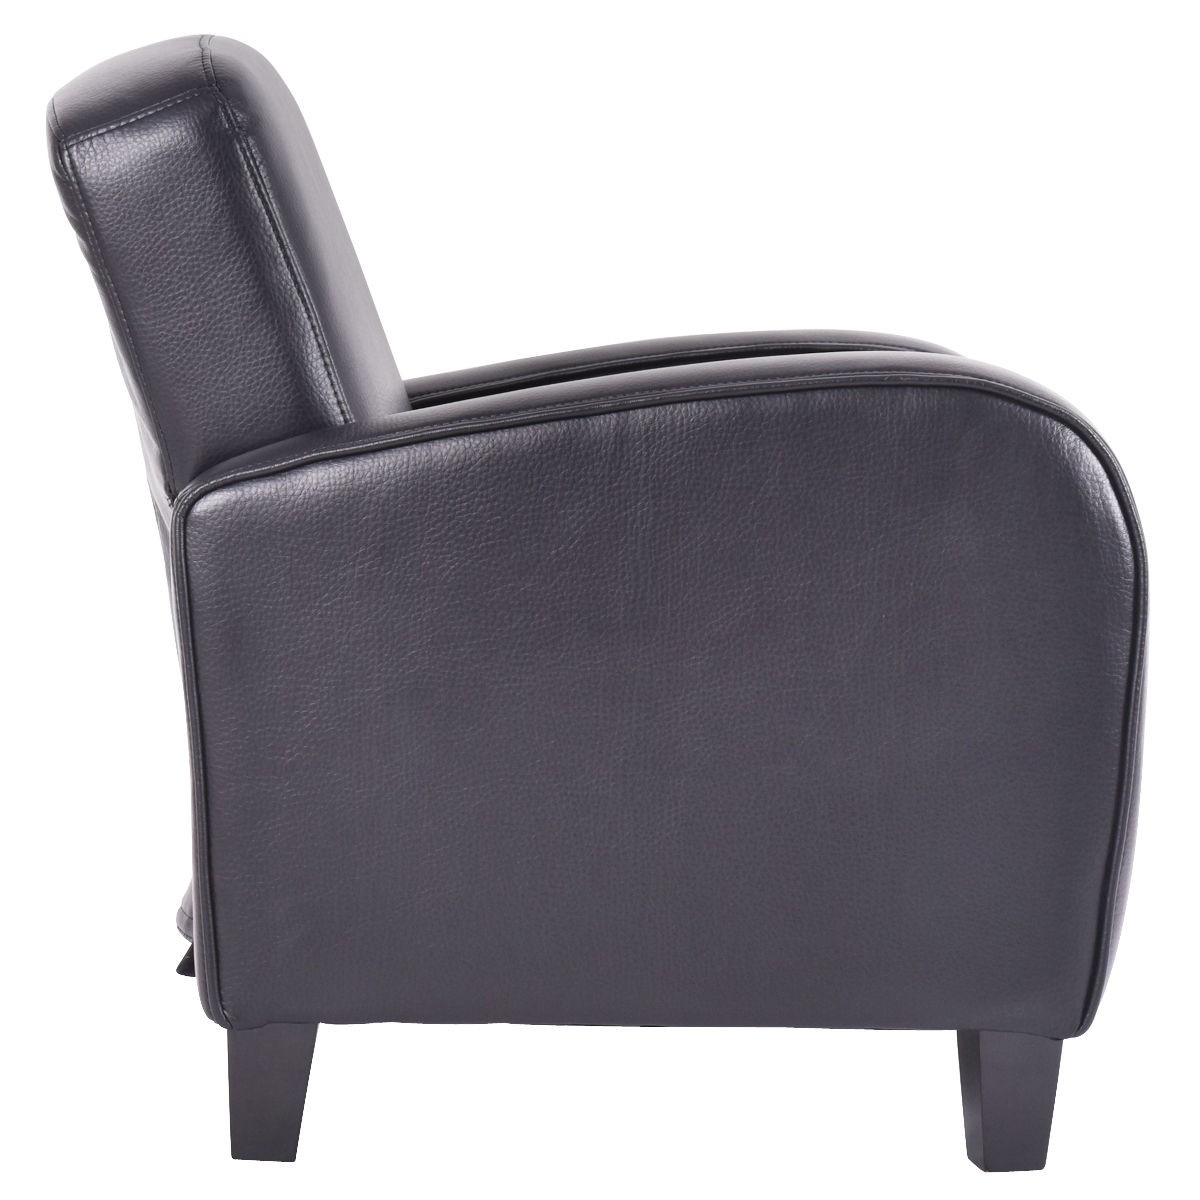 Us Stock Accent Leisure Single Sofa Arm Chair Seat Living Room Office Furniture Ebay